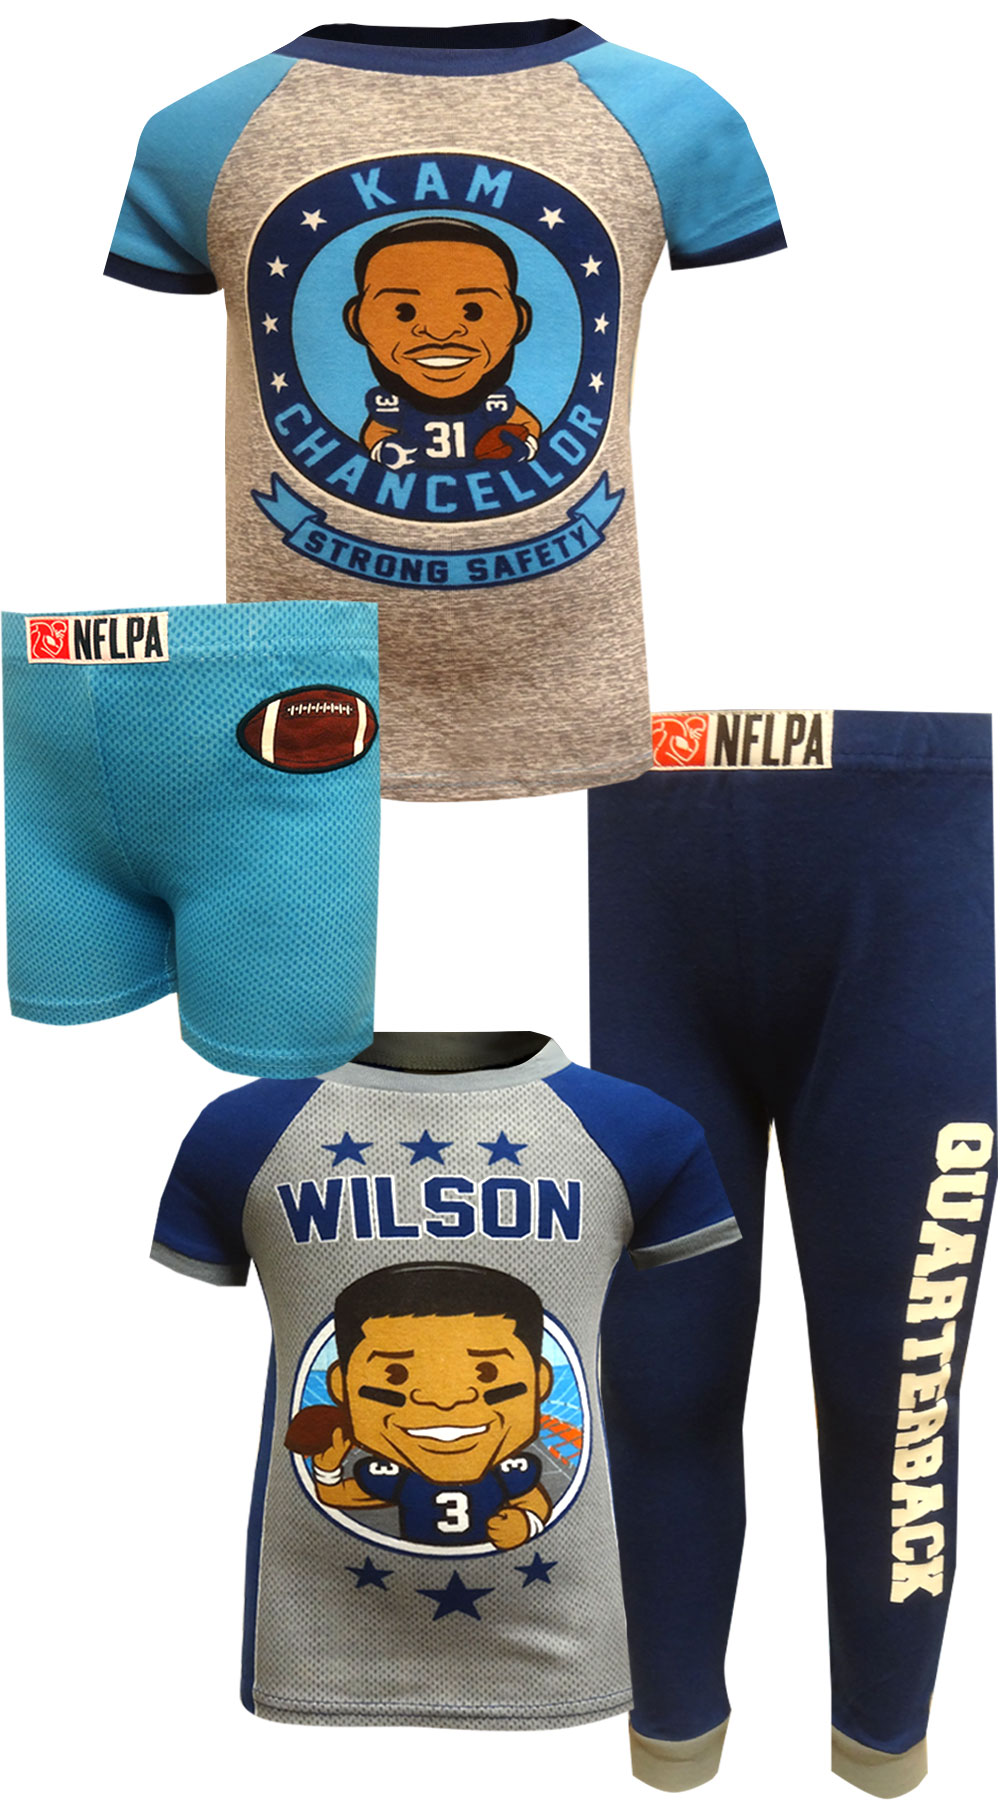 Image of NFLPA Kam Chancellor and Russell Wilson 4 Piece Pajama Set for boys